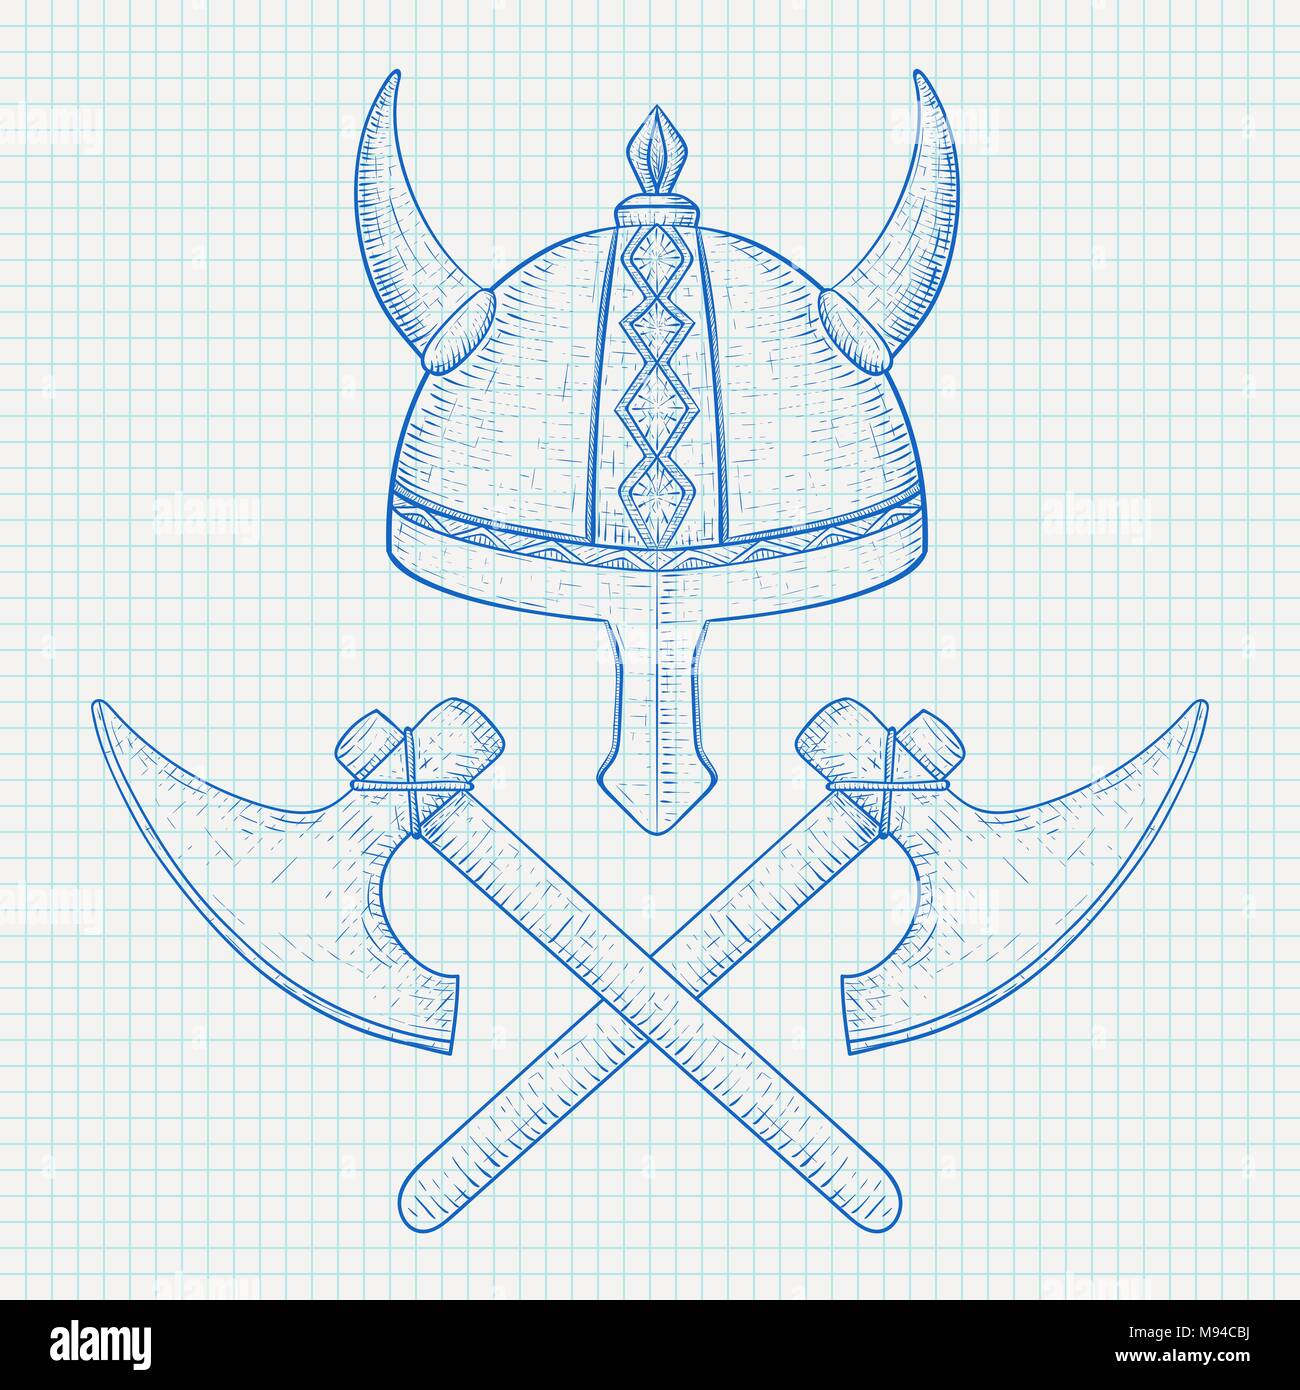 Viking axes and horned helmet. Hand drawn sketch - Stock Image